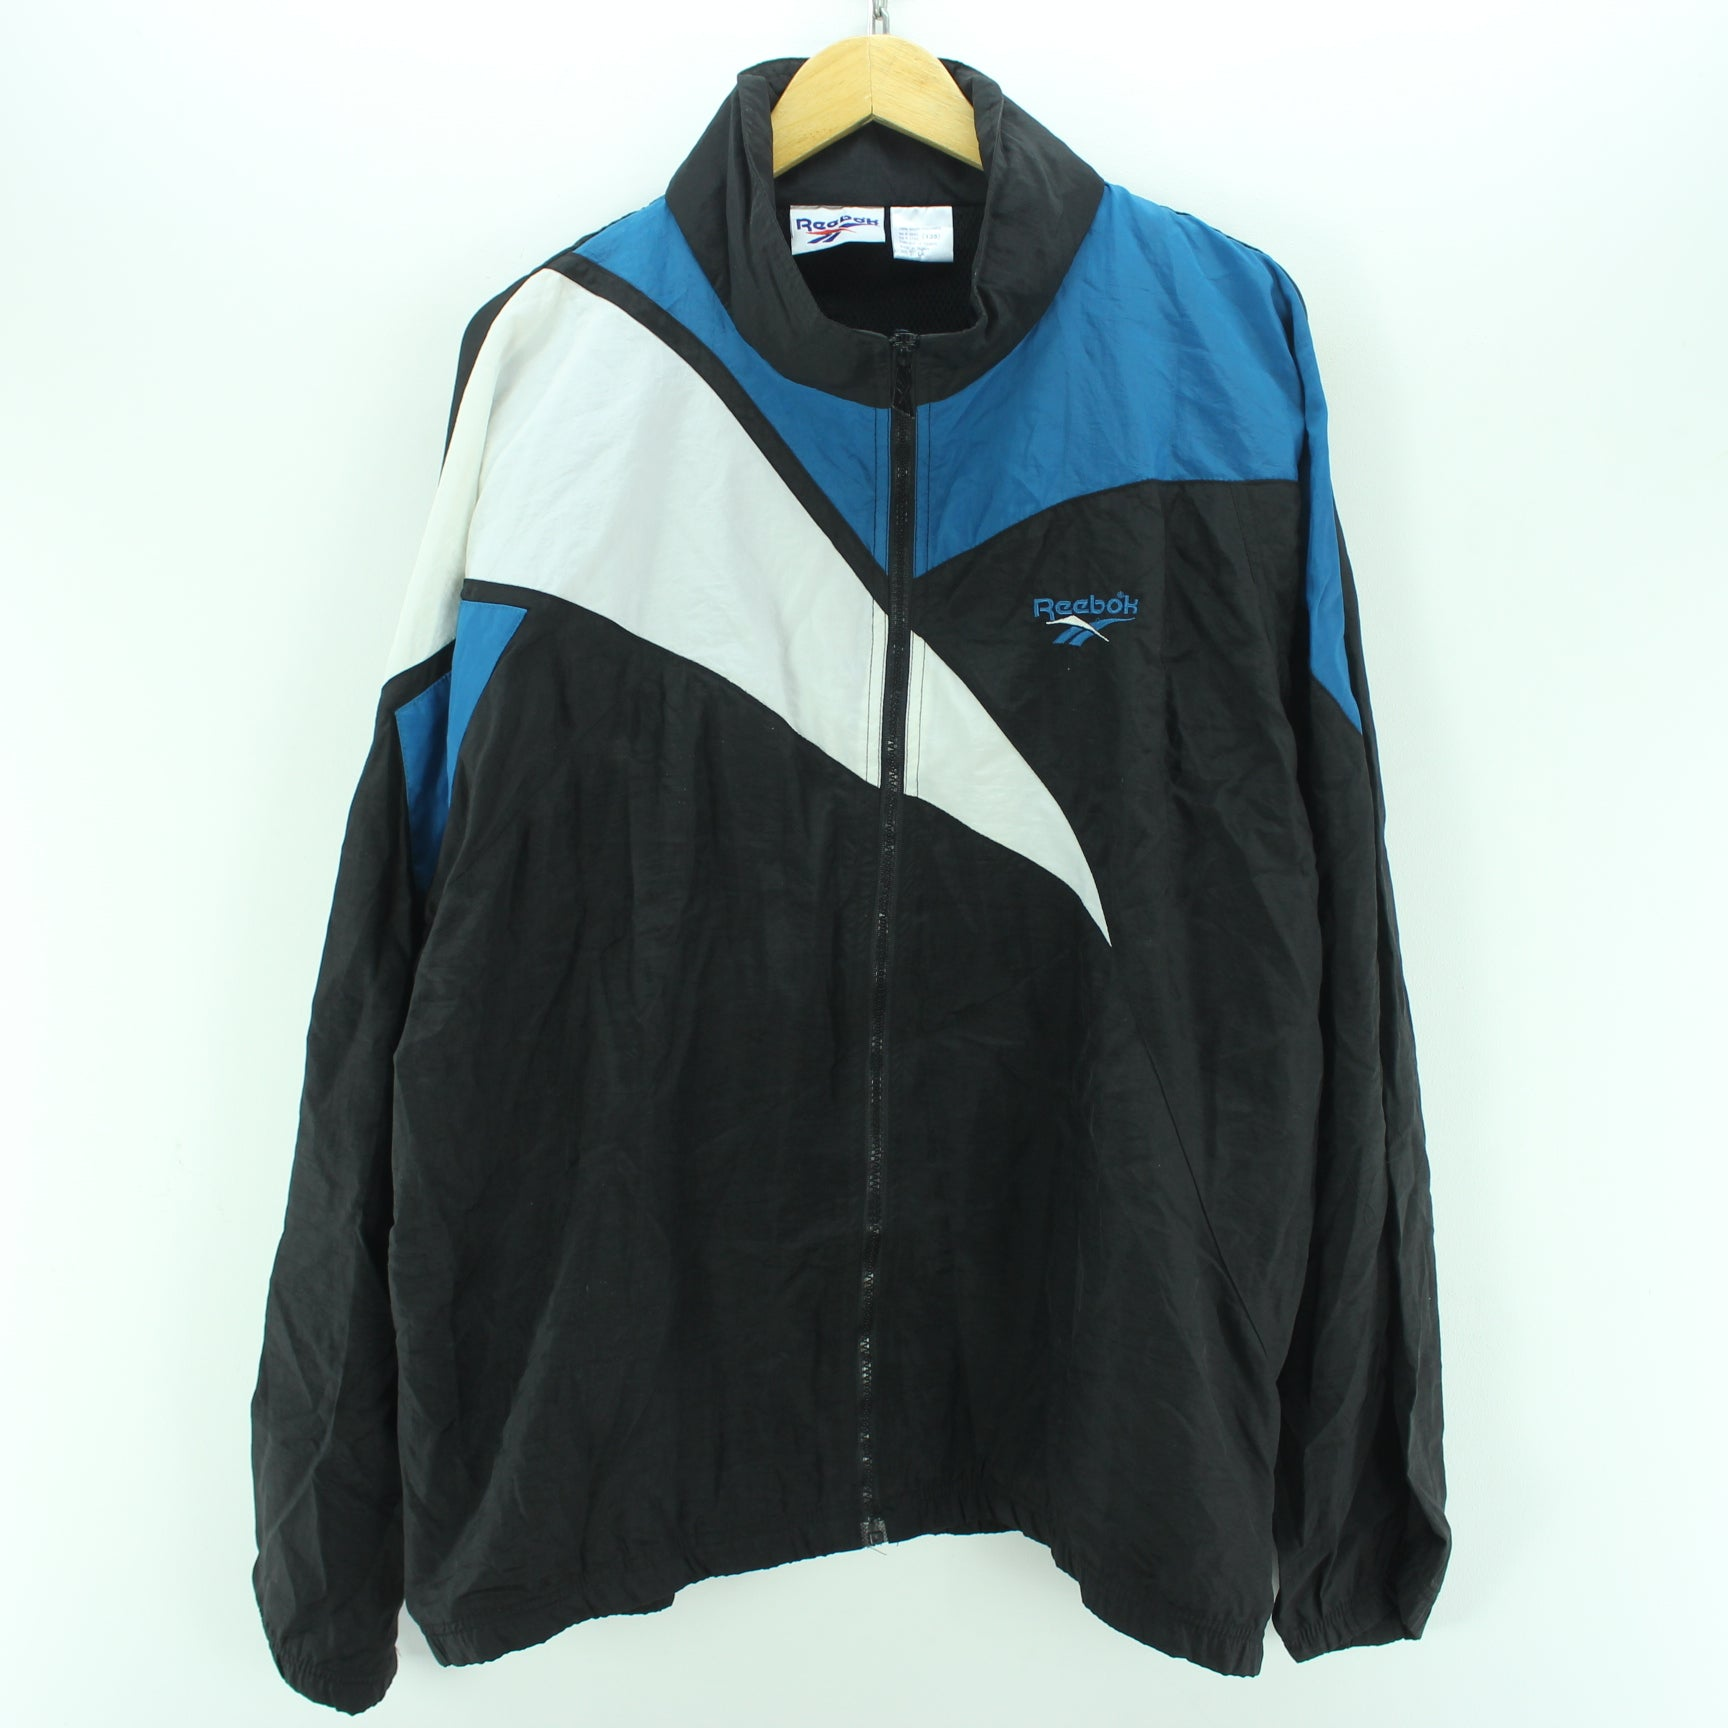 89cfcfbf96368 Mens Vintage Polo Shirts, Branded Coats and Jackets In UK, Ireland ...